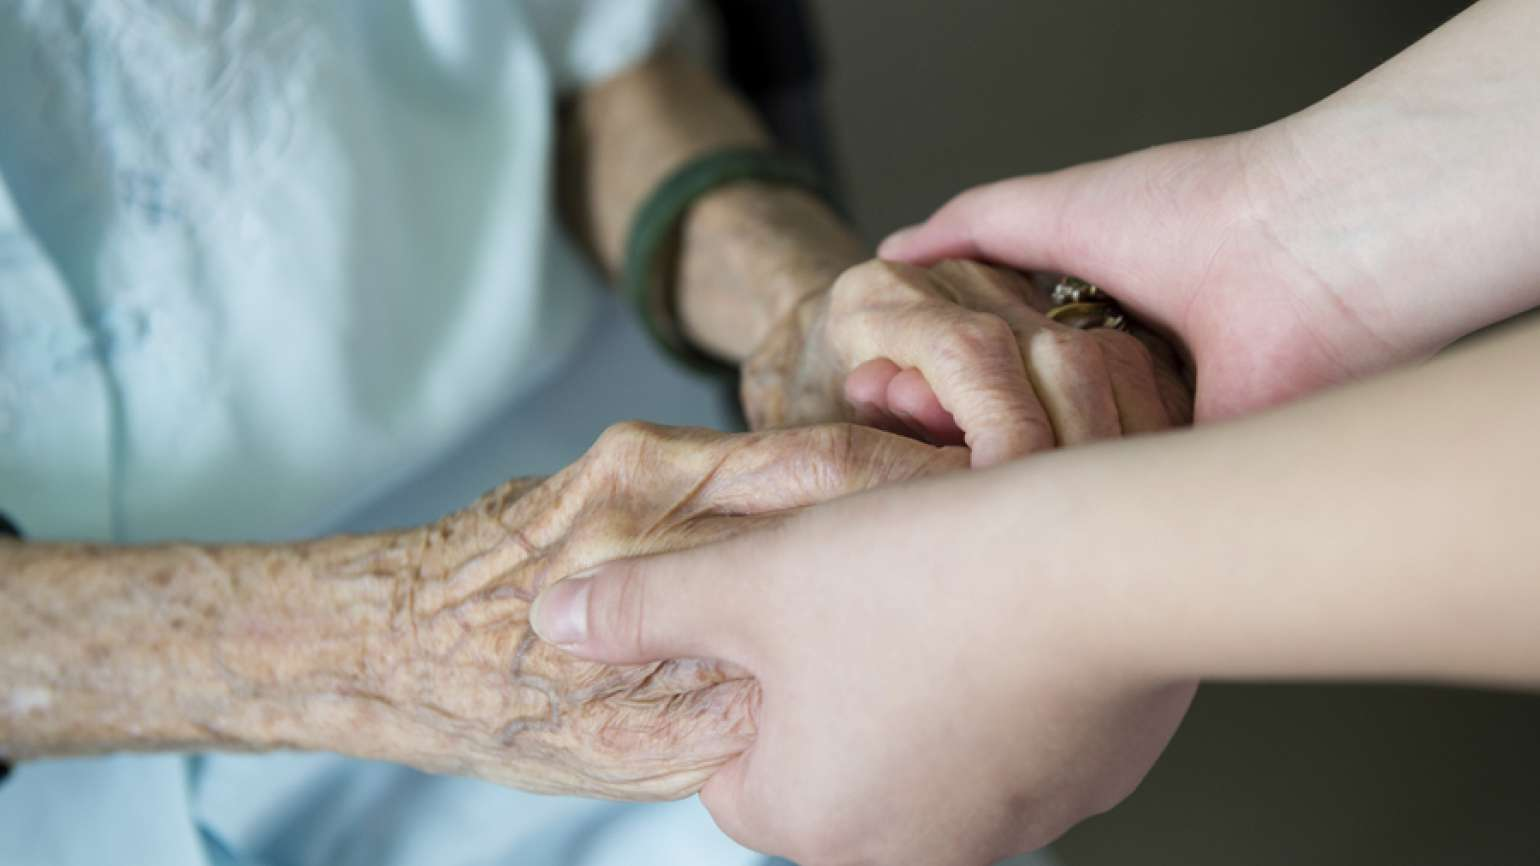 An elderly woman's hands are clasped lovingly by a younger woman's hands.